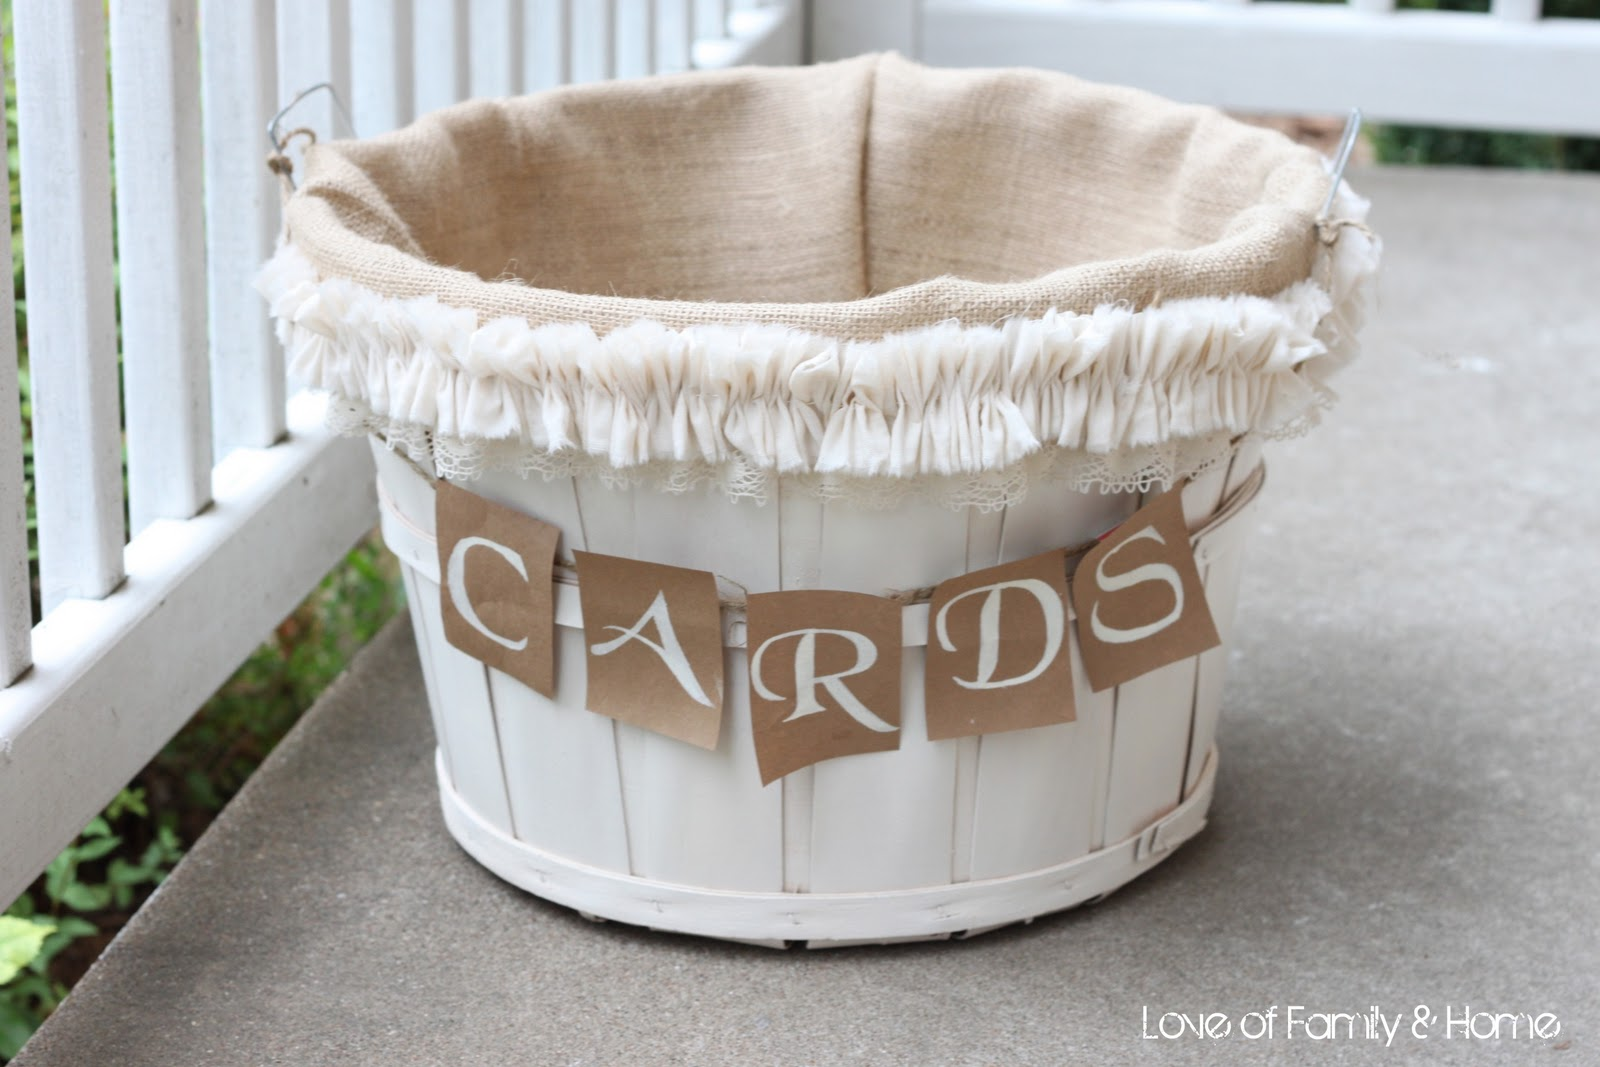 How To Make Wedding Gift Basket : DIY Wedding Card Basket...Love of Family & Home